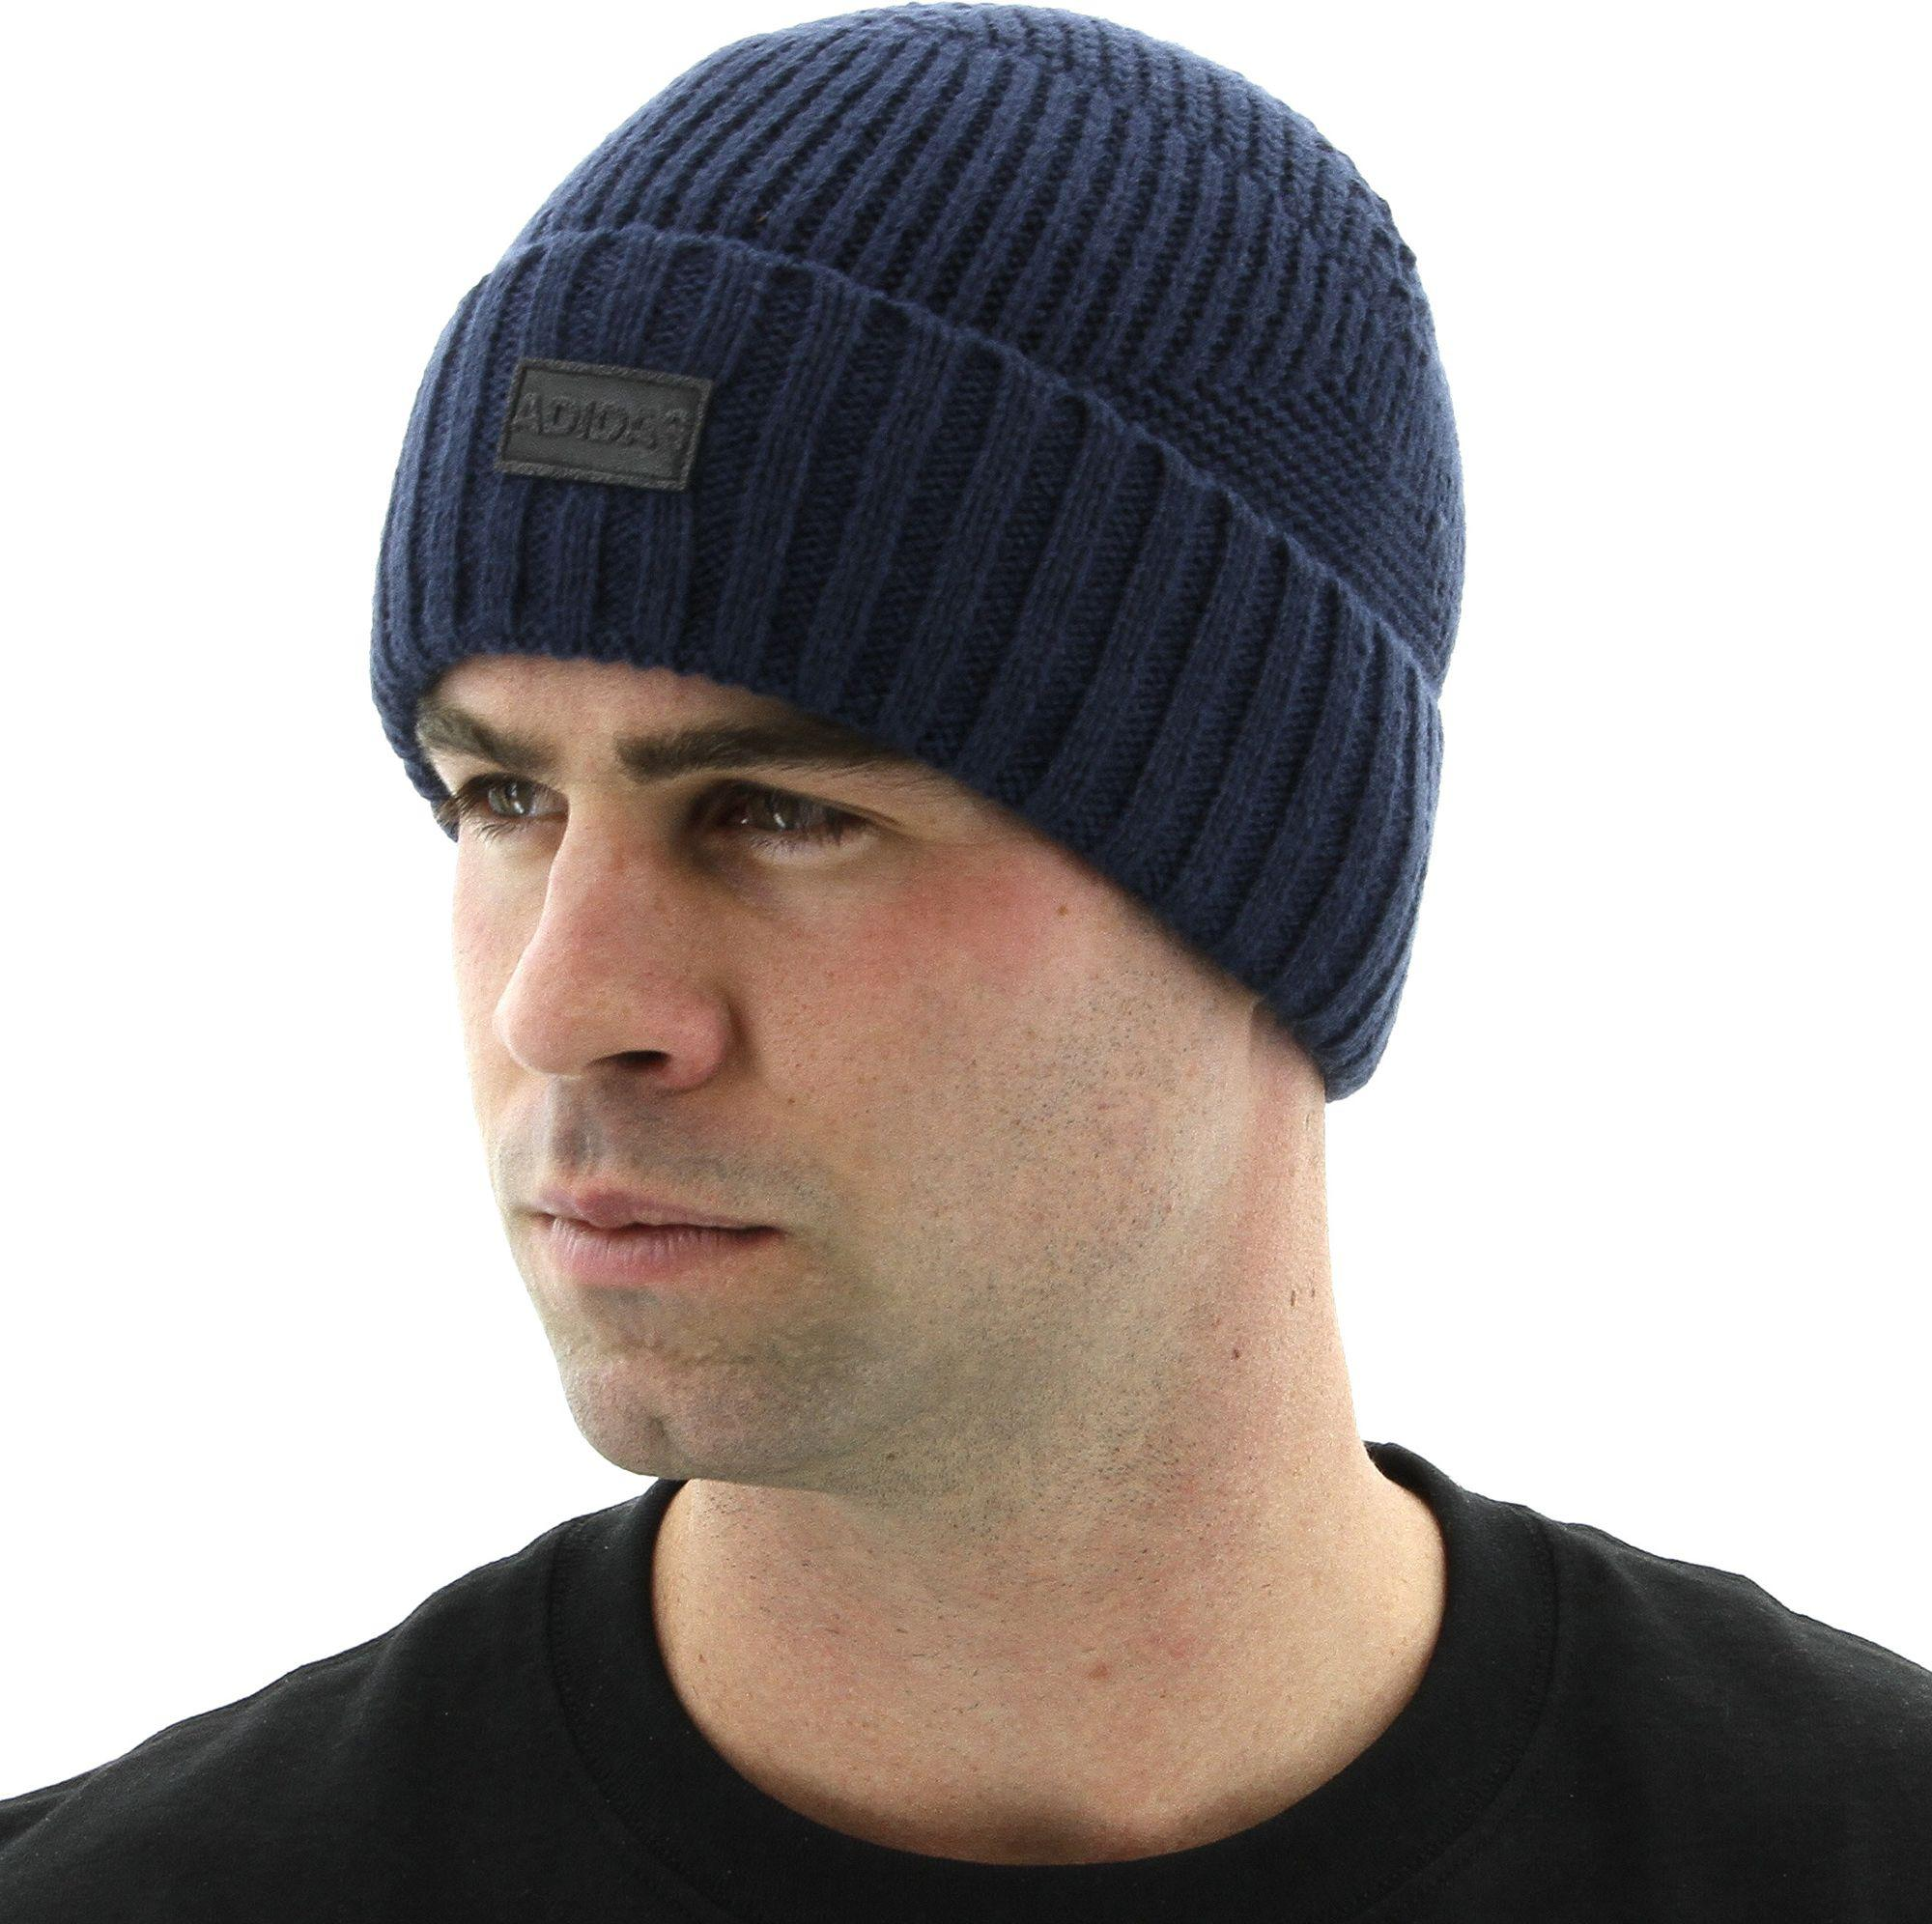 Lyst - adidas Pine Knot Beanie in Blue for Men 4103dd95e42